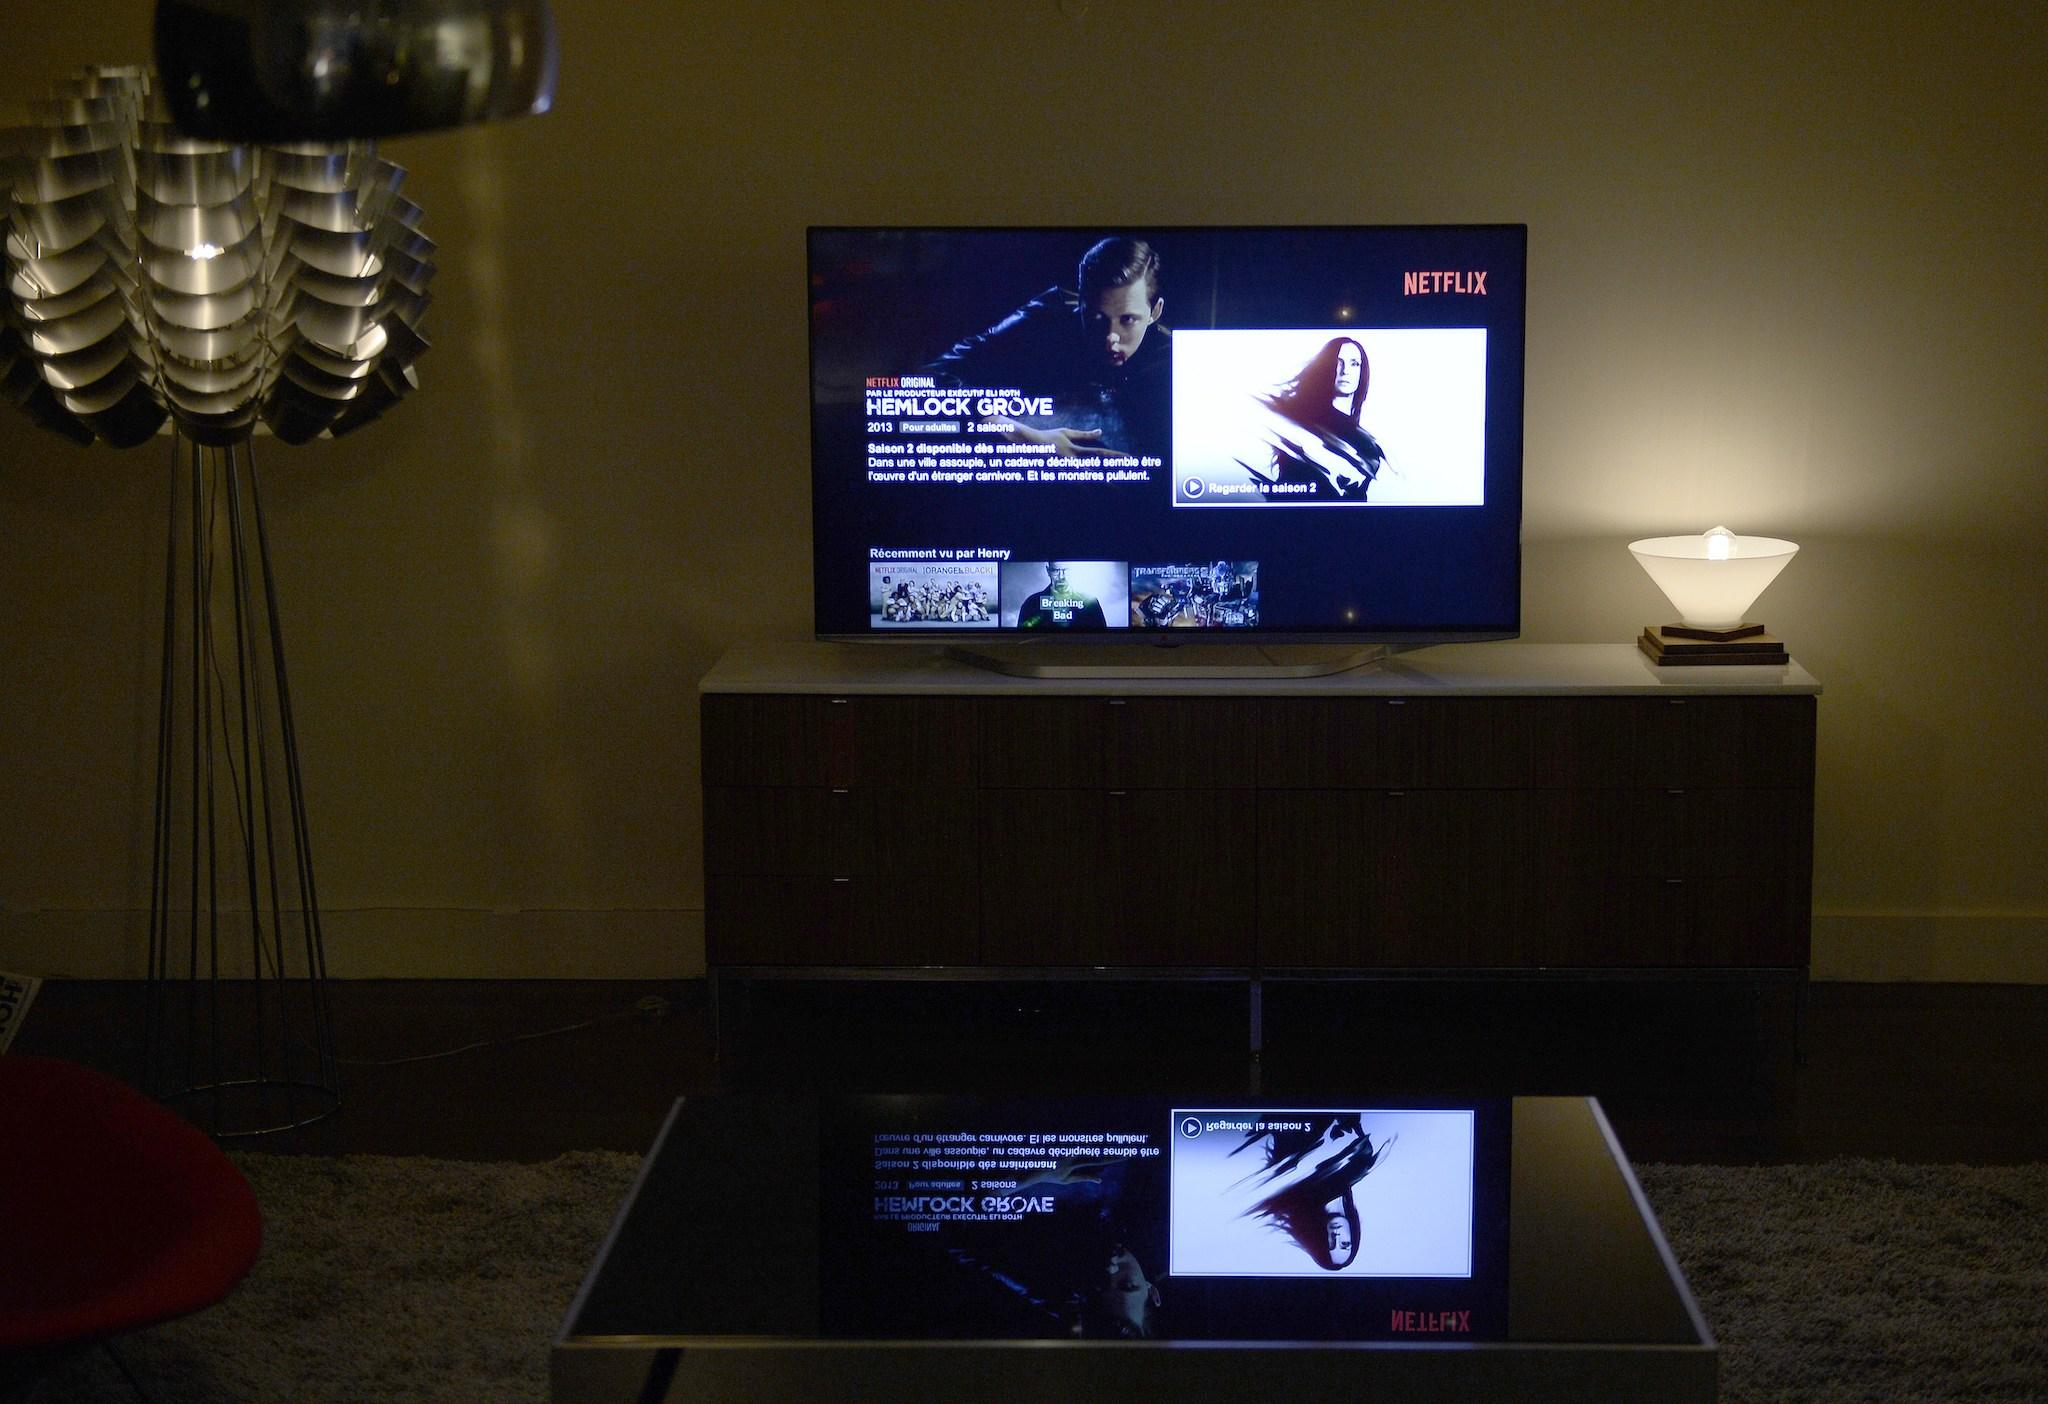 New 4K streaming standard could make Netflix, Amazon Prime, and more twice as fast